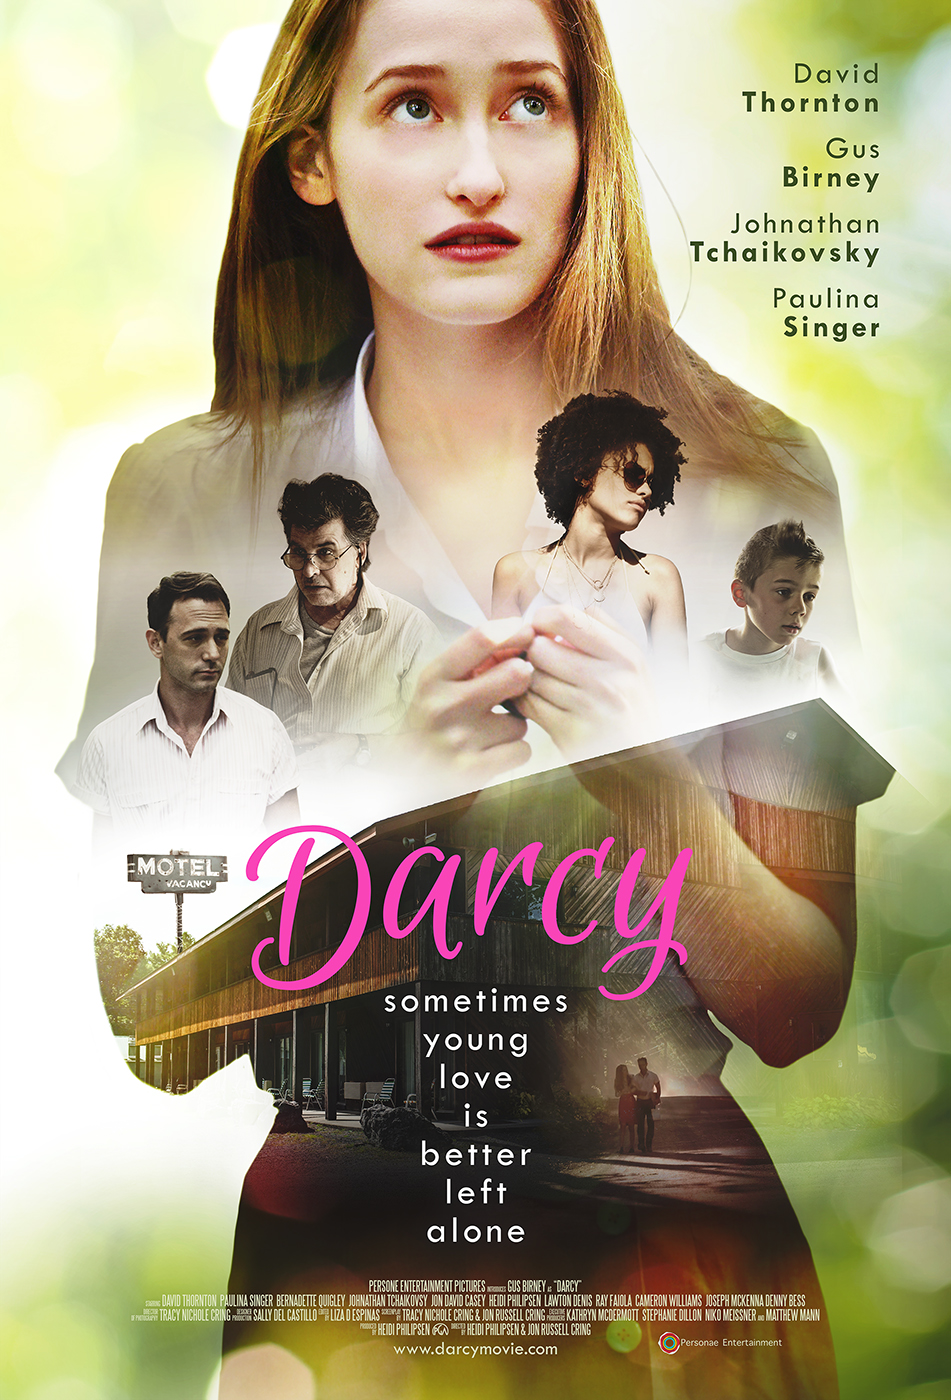 Darcy poster